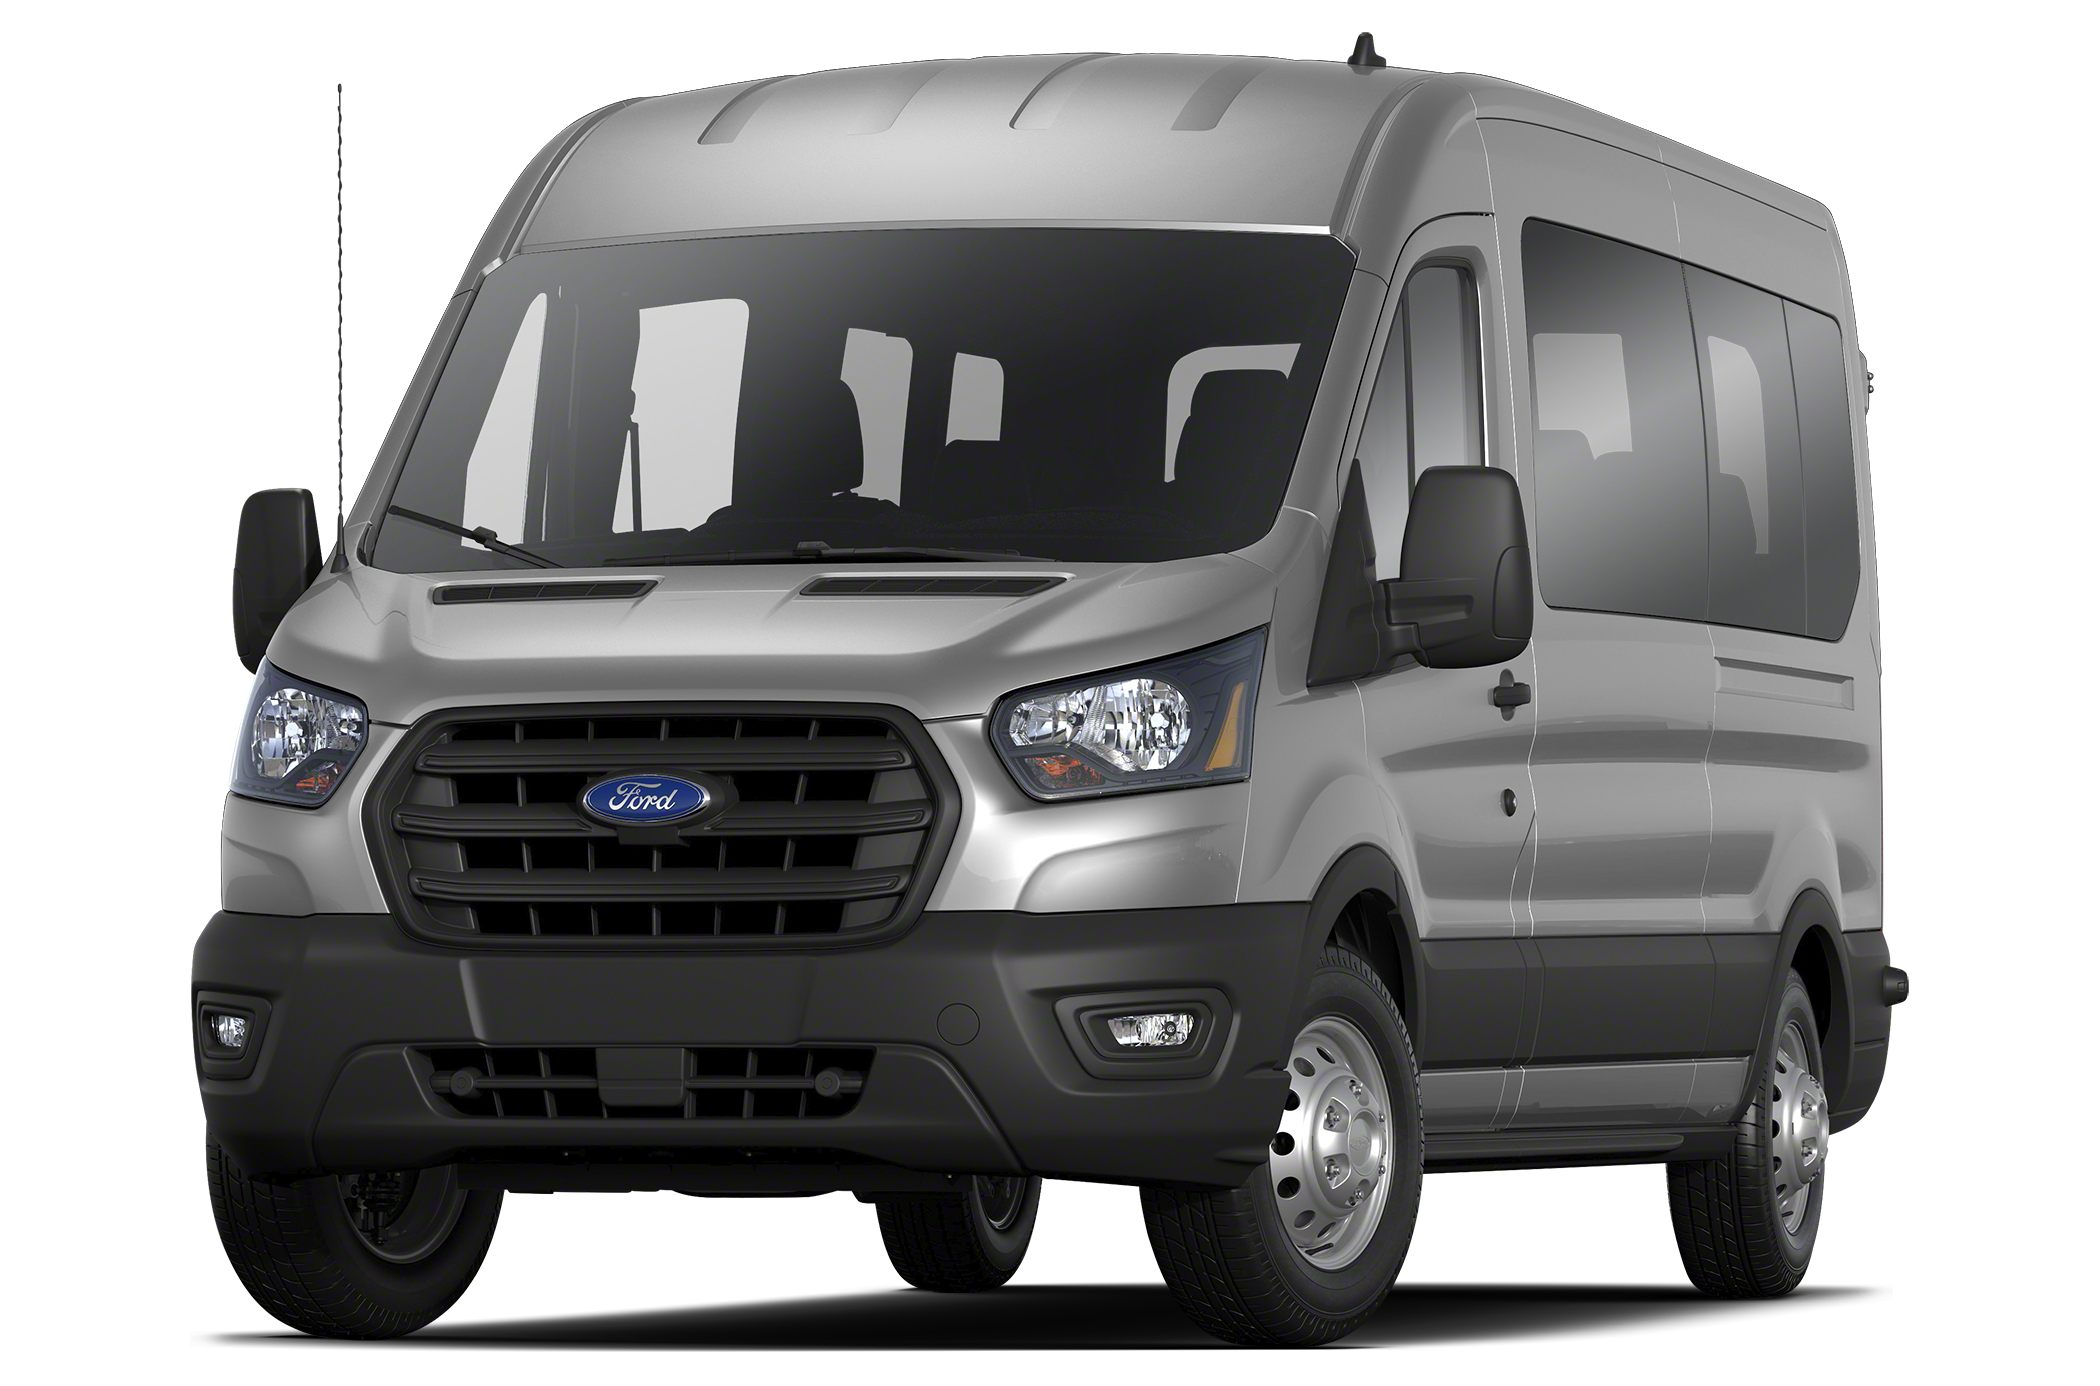 2020 ford transit 350 passenger xlt all wheel drive high roof van 148 in wb specs and prices http mcrouter digimarc com imagebridge router mcrouter asp p source 101 p id 332763 p typ 4 p did 0 p cpy 2019 p att 5